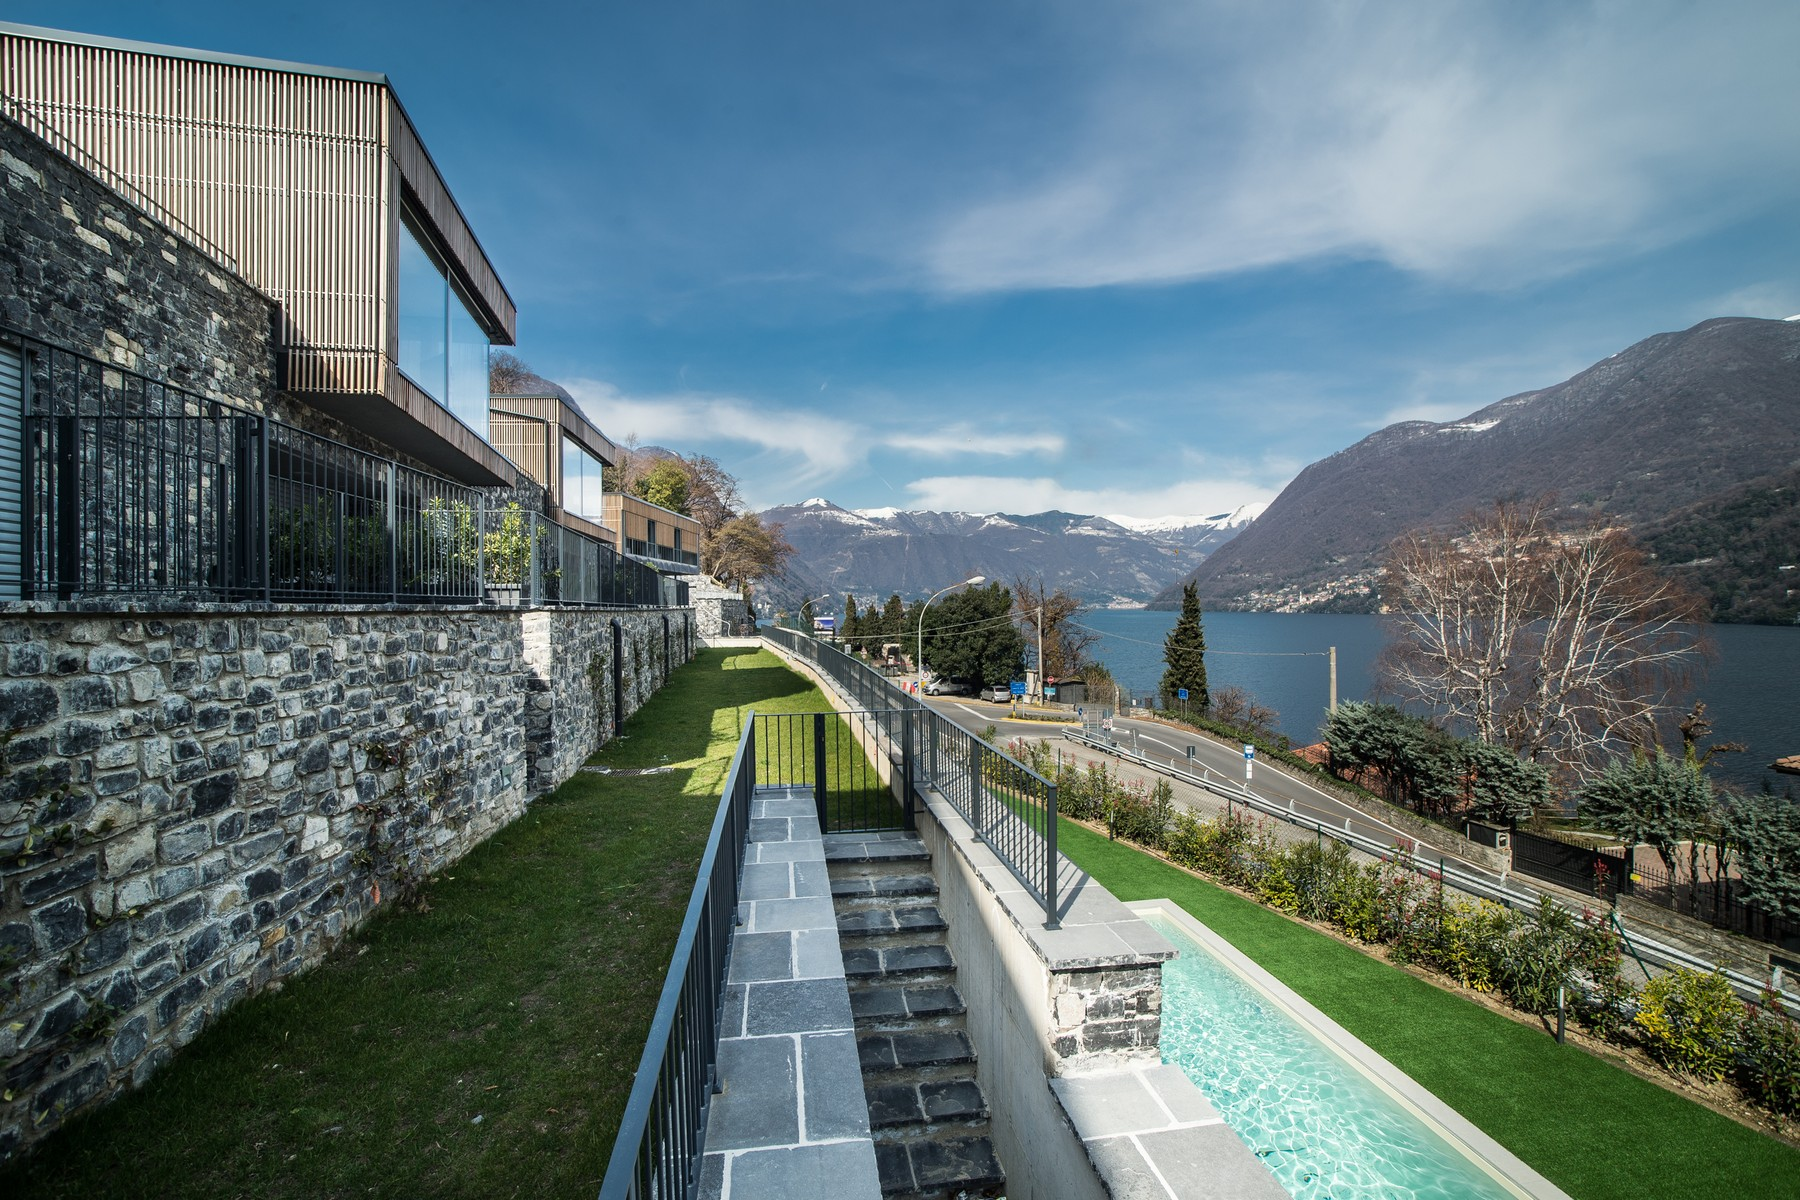 Additional photo for property listing at Prestigious modern villa with private swimming pool and magnificent Lake views Laglio Laglio, Como 22010 Italy